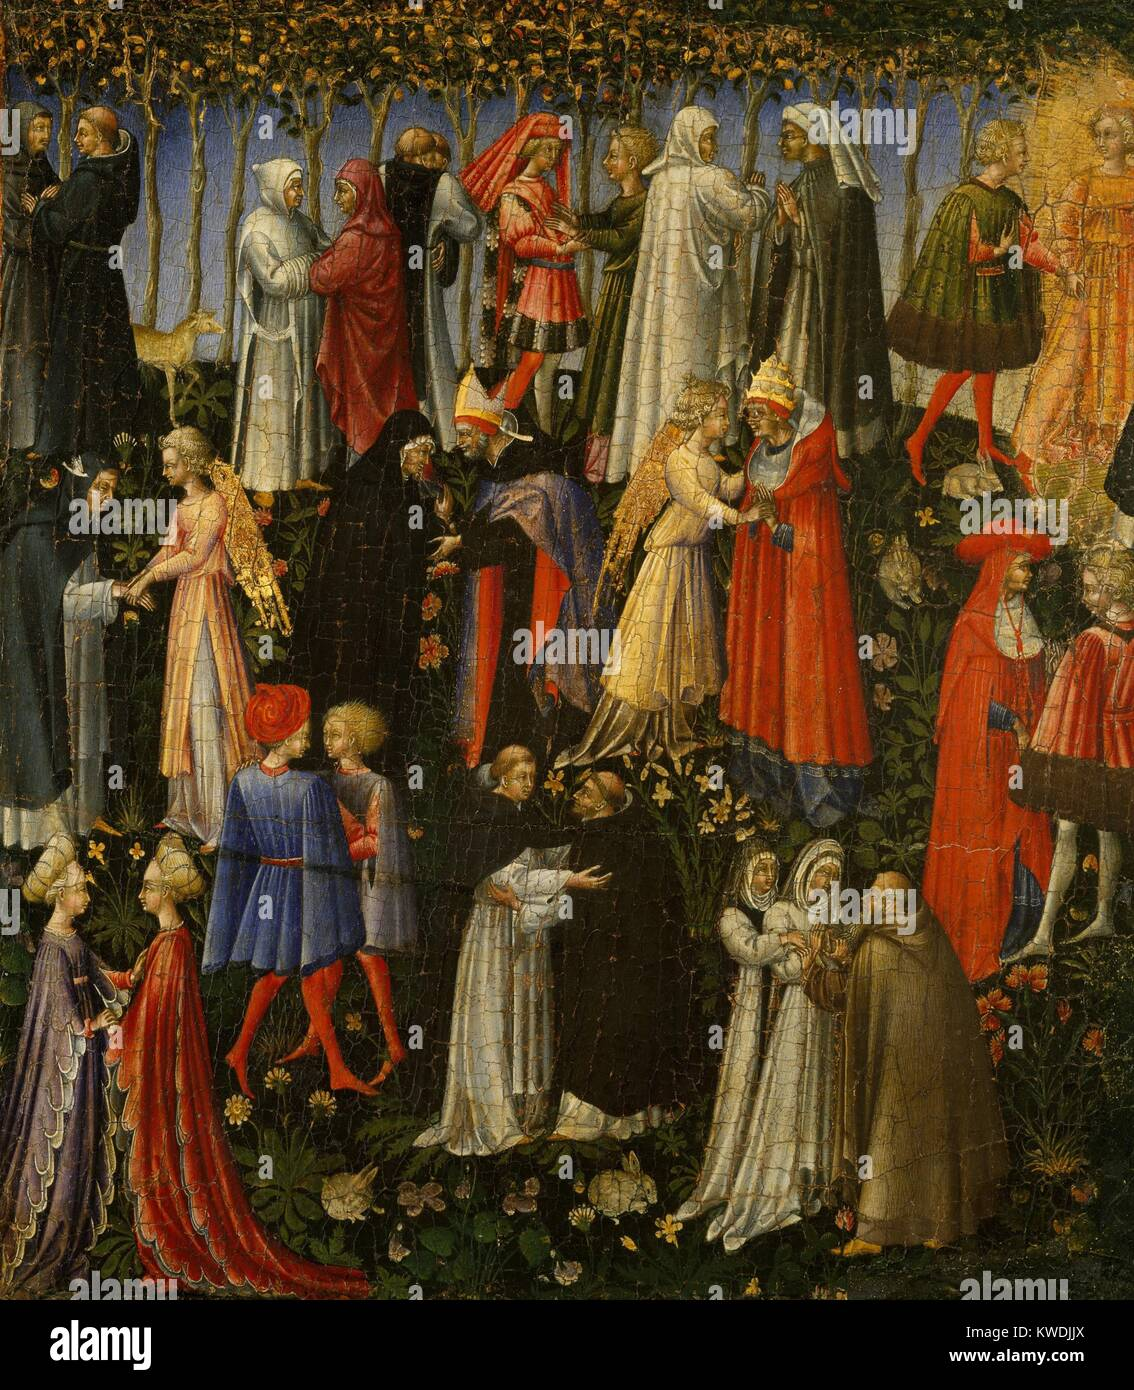 PARADISE, by Giovanni di Paolo, 1445, Italian Renaissance painting, tempera on wood. Saints and Angels embrace in - Stock Image